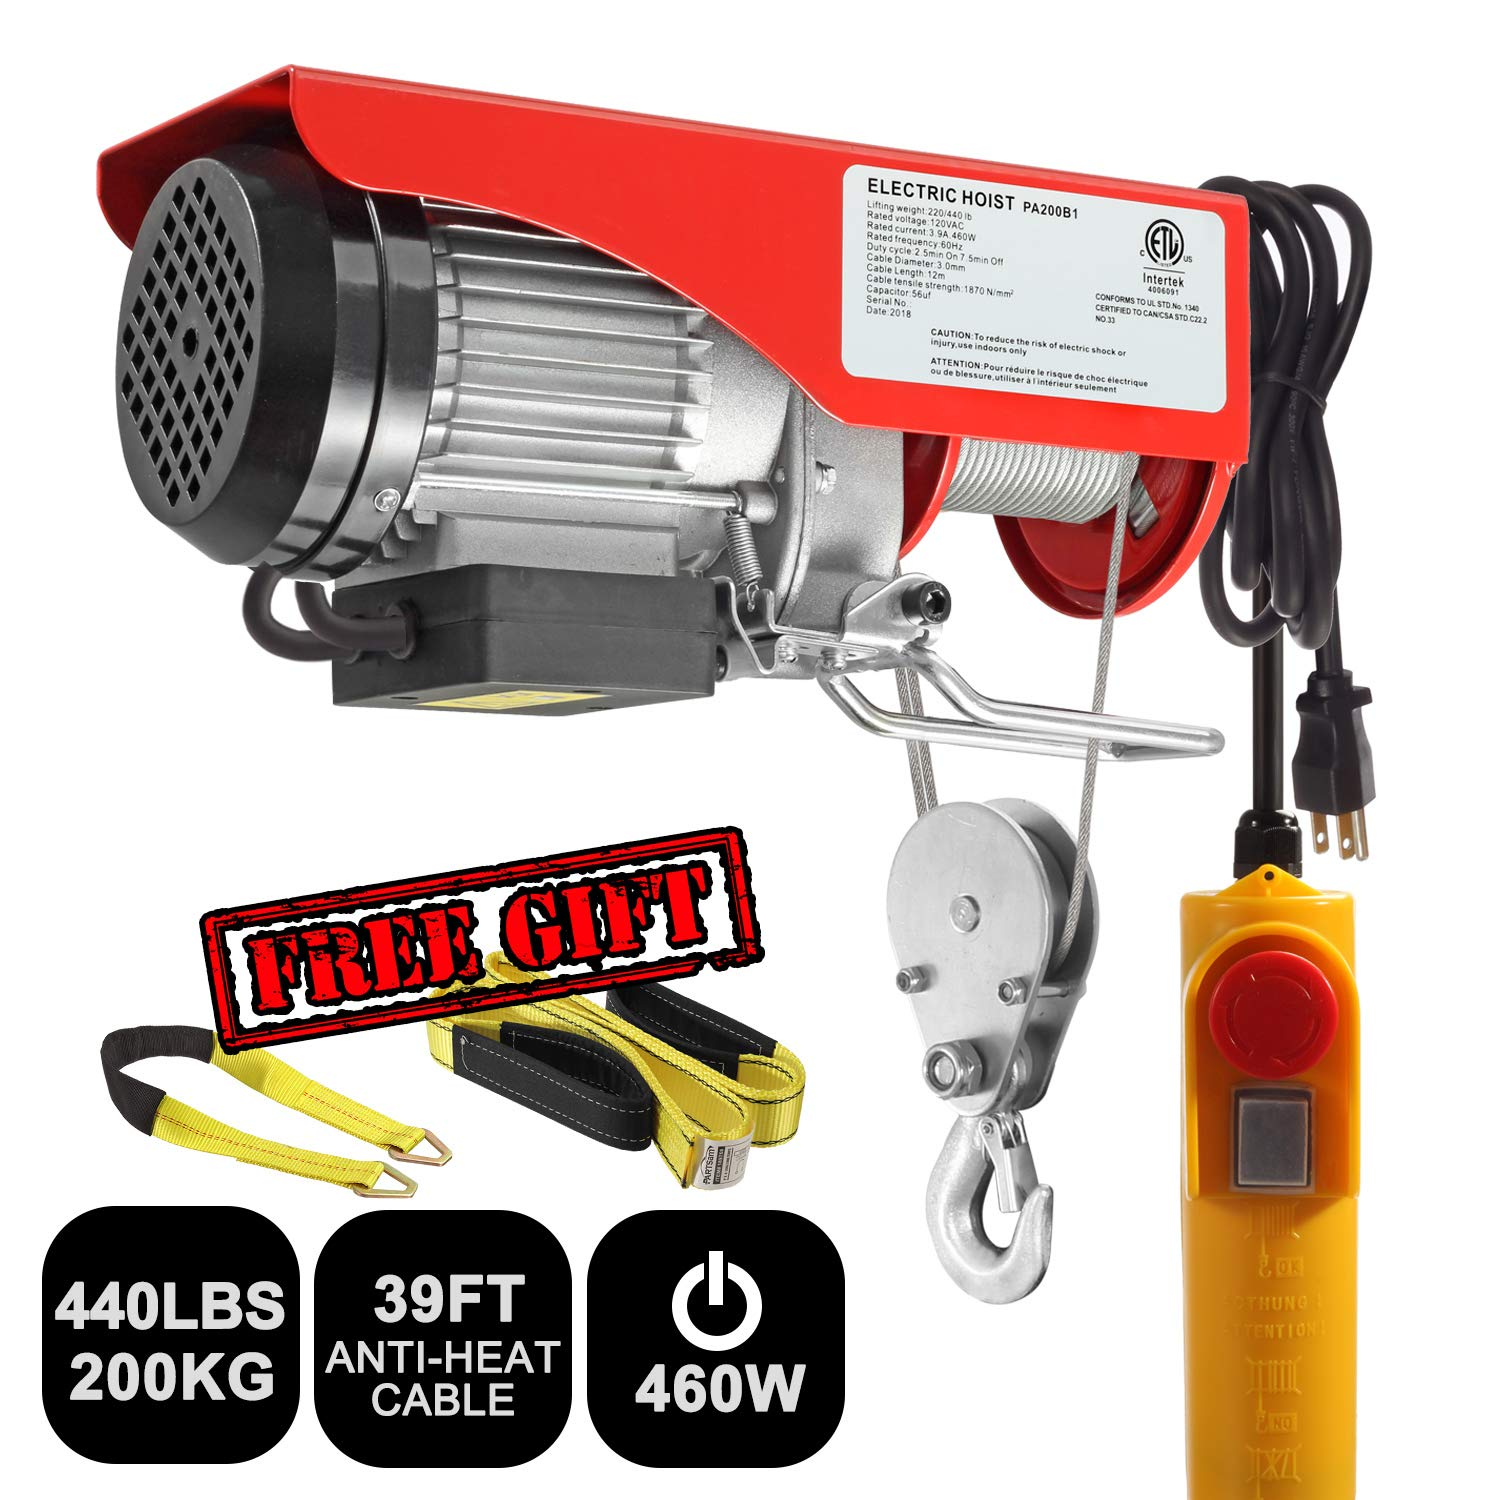 Partsam 440 lbs Lift Electric Hoist Crane Remote Control Power System, Zinc-Plated Steel Wire Overhead Crane Garage Ceiling Pulley Winch w/Premium Straps (UL/CUL Approval, w/Emergency Stop Switch) by Partsam